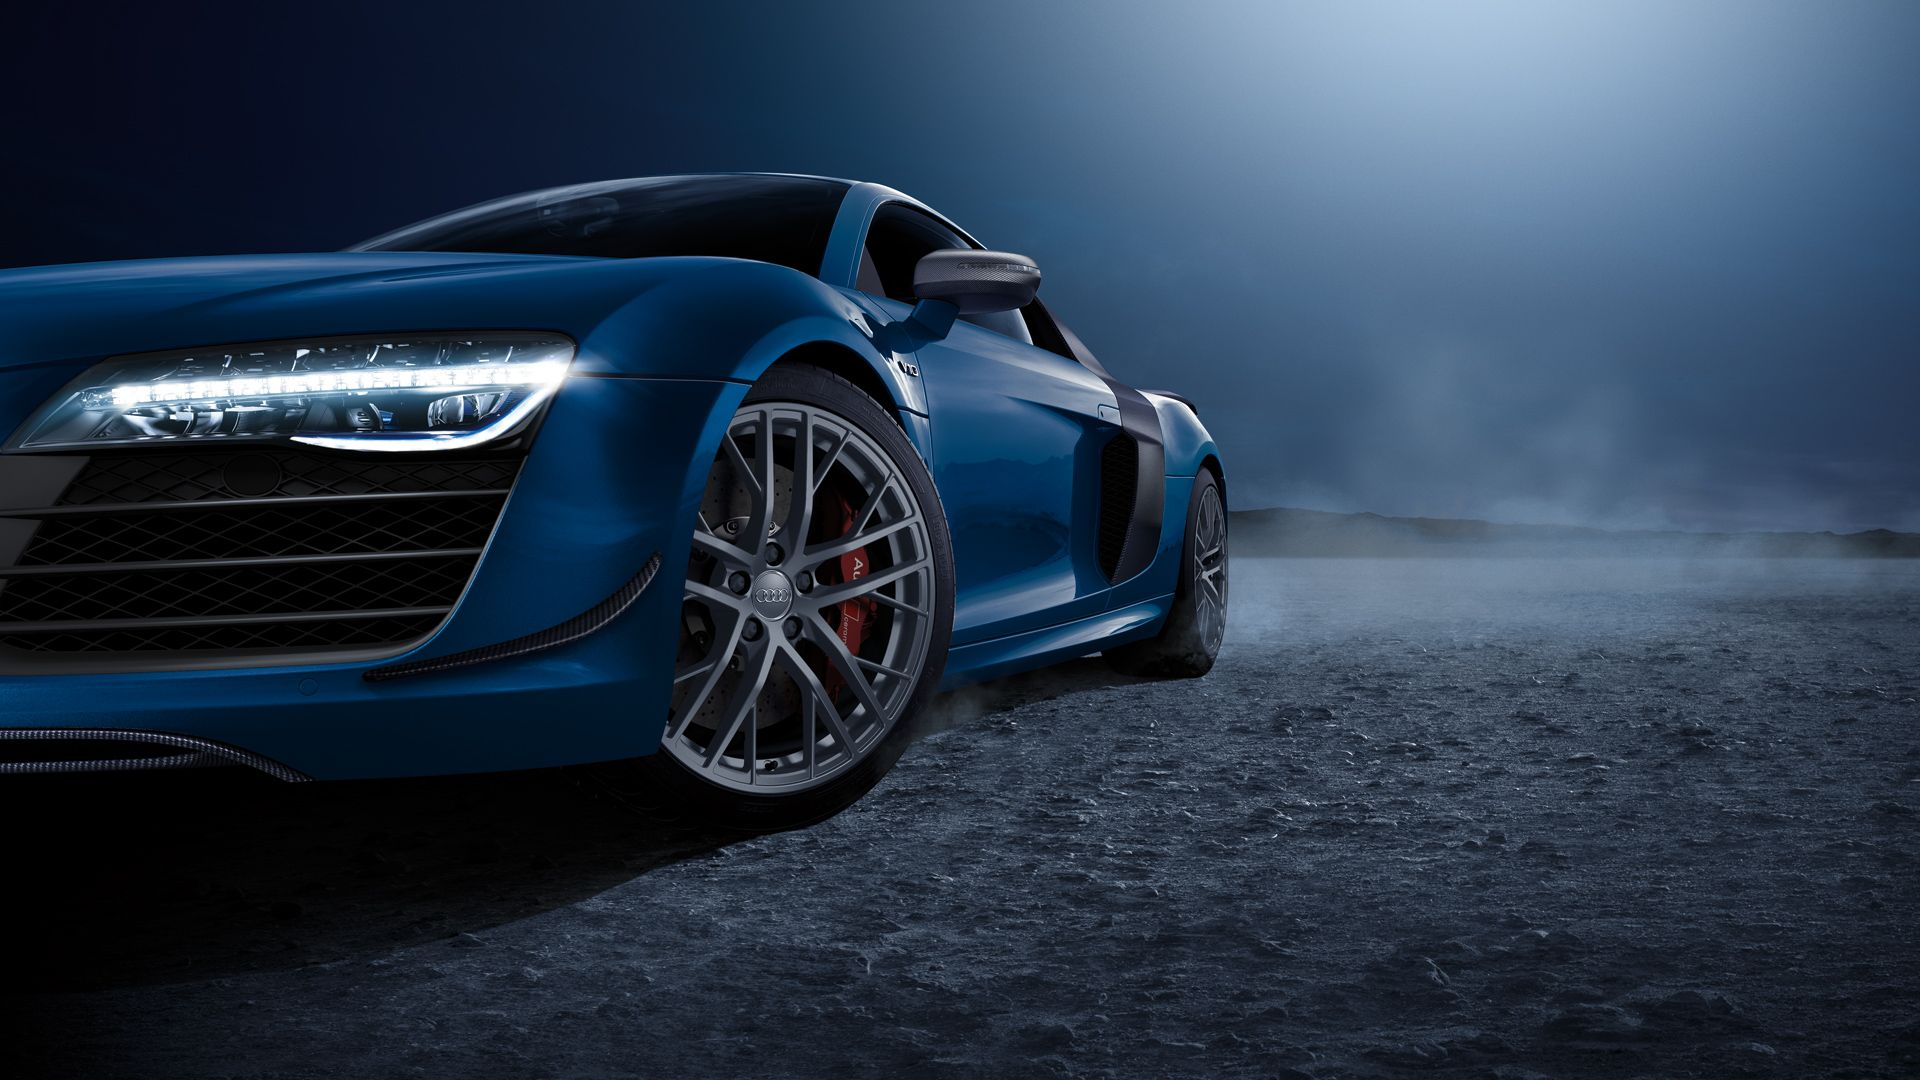 Audi R8 Desktop Wallpaper 11